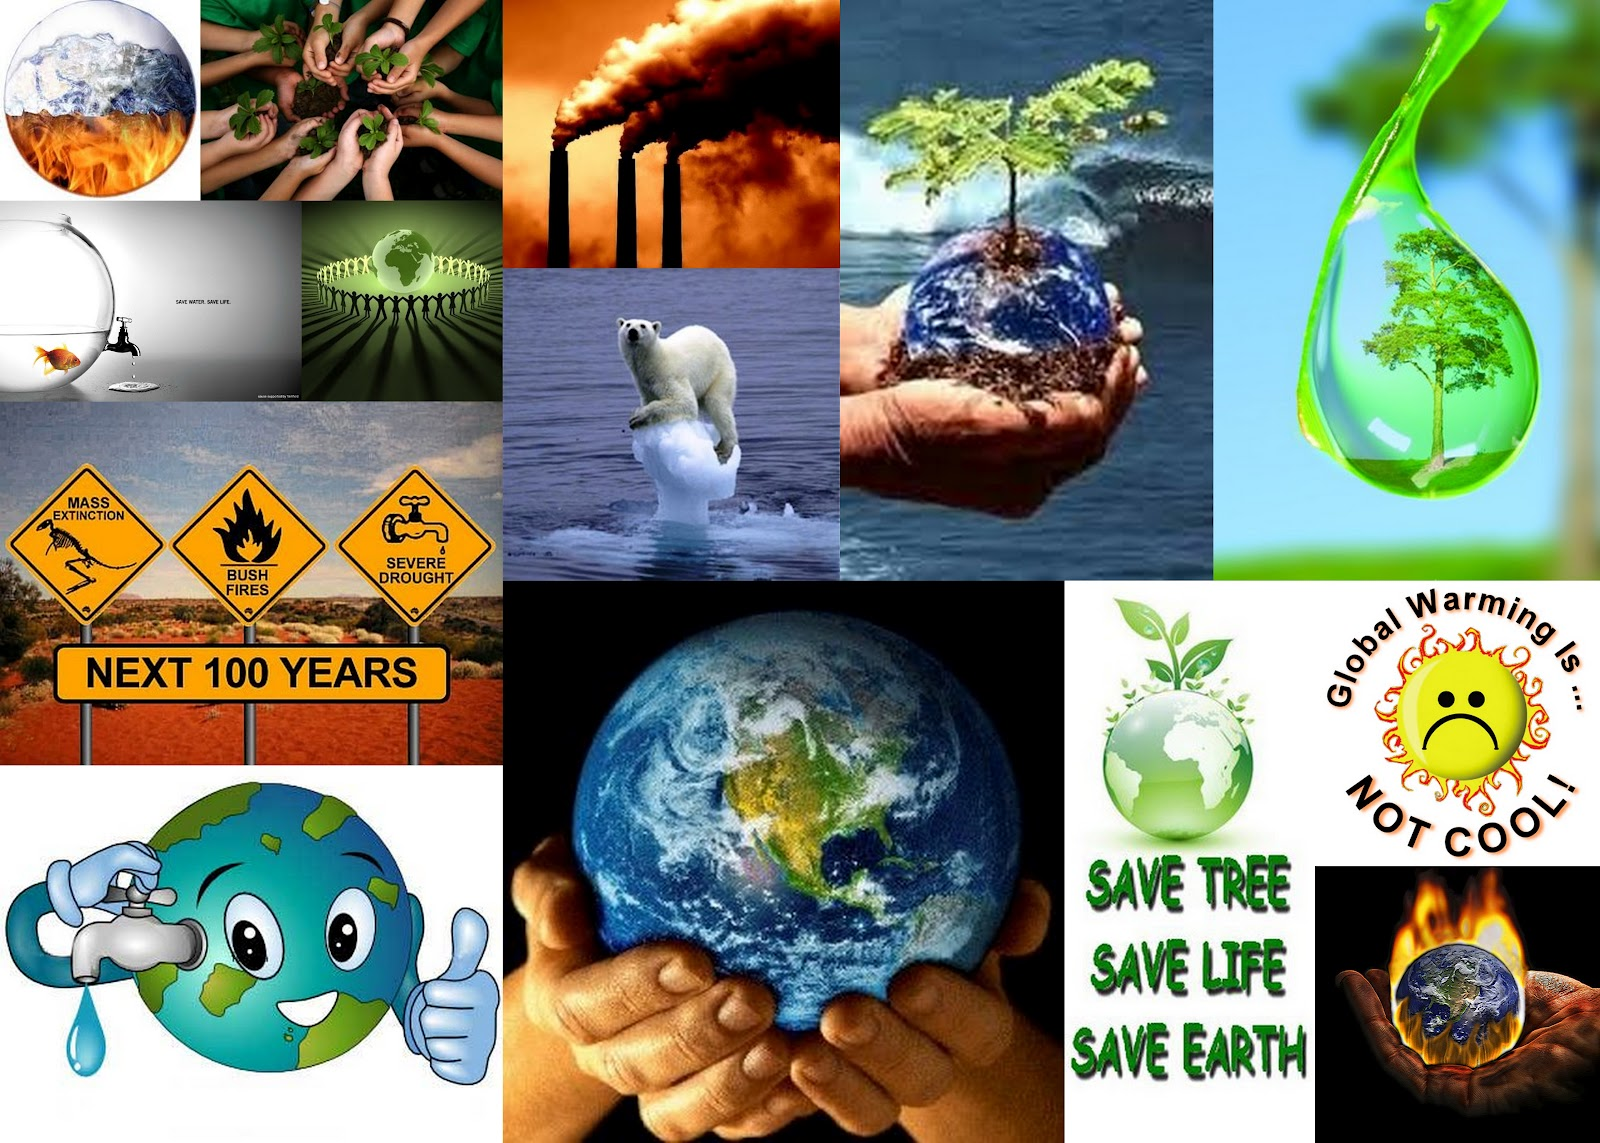 Save Trees Slogans in English http://kootation.com/save-tree-slogan.html